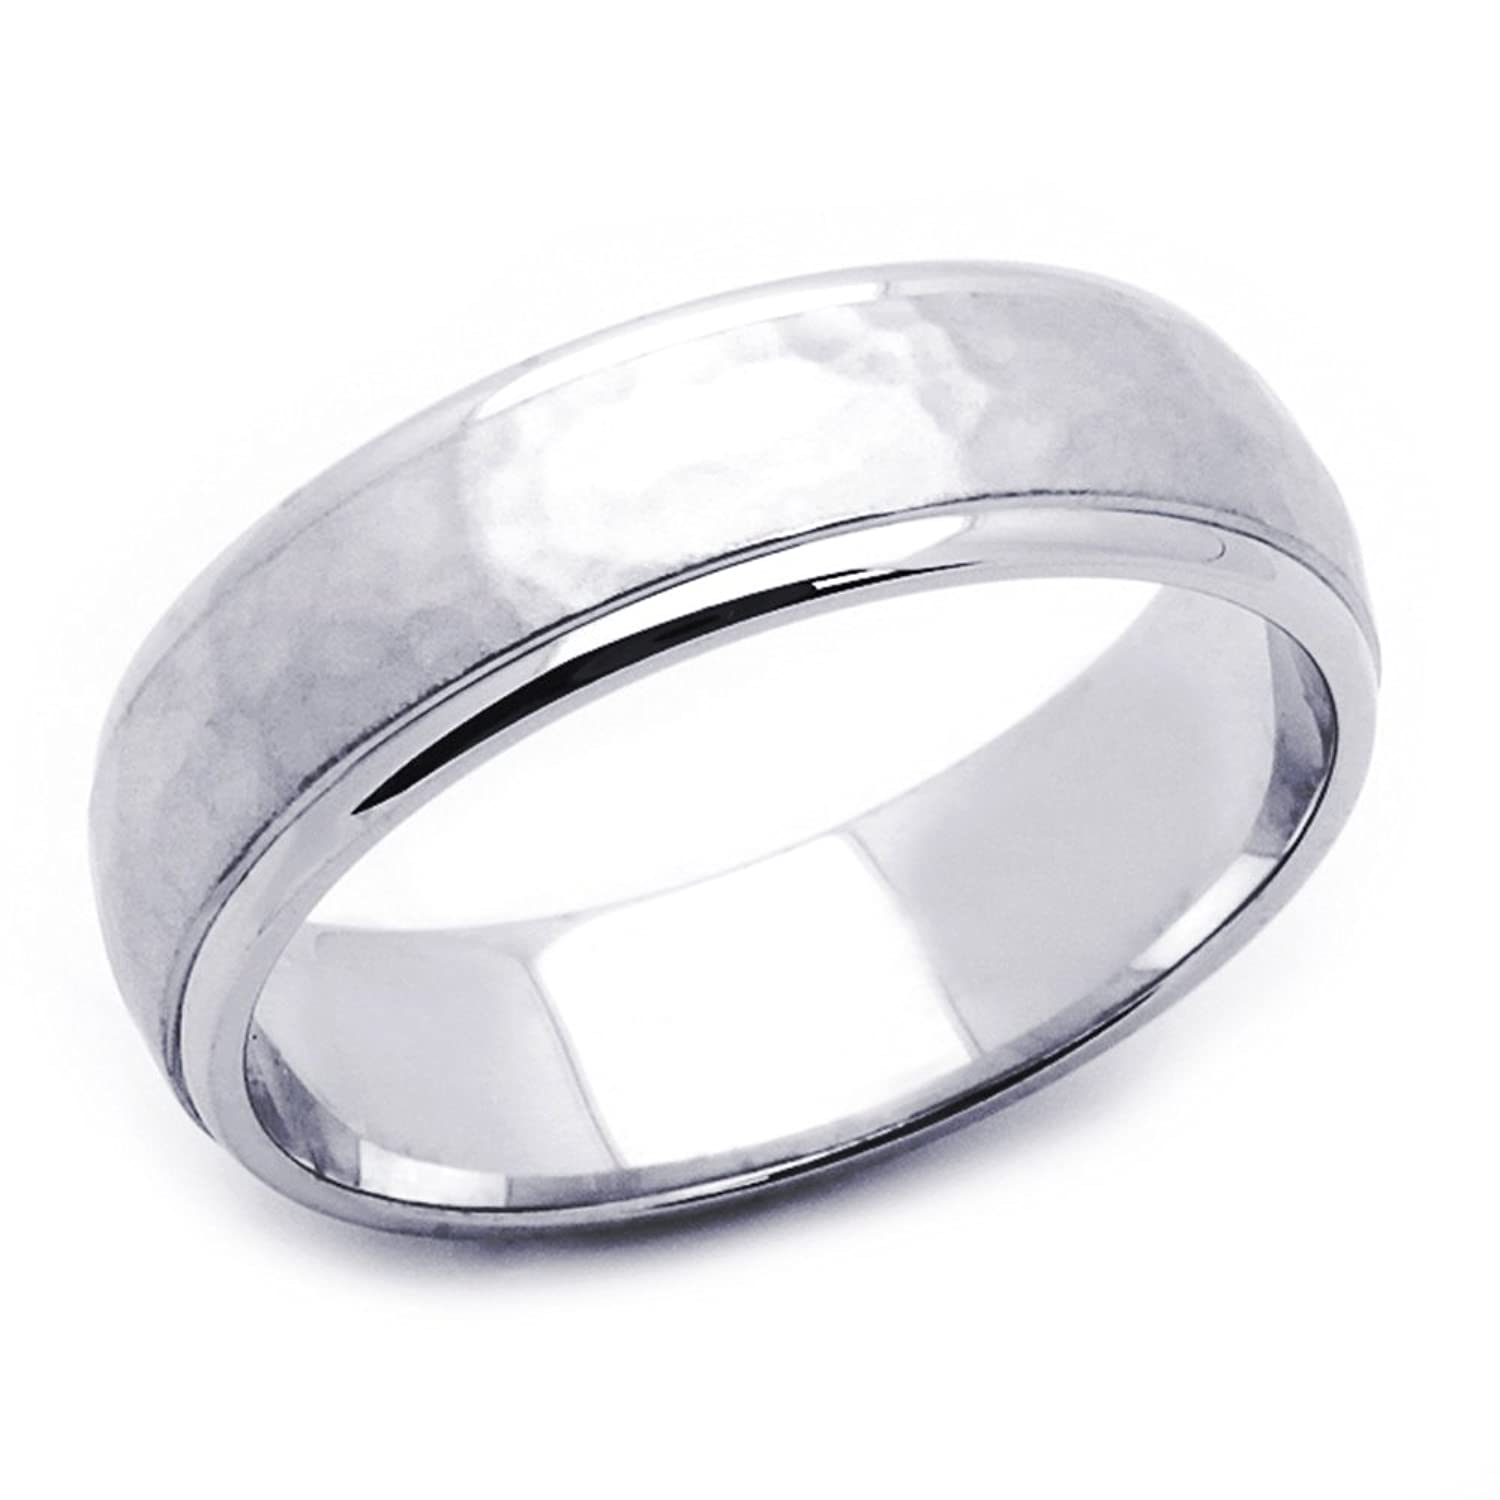 wedding cartier ring mens grace platinum beautiful ref luxe new of instant bands silver rings a